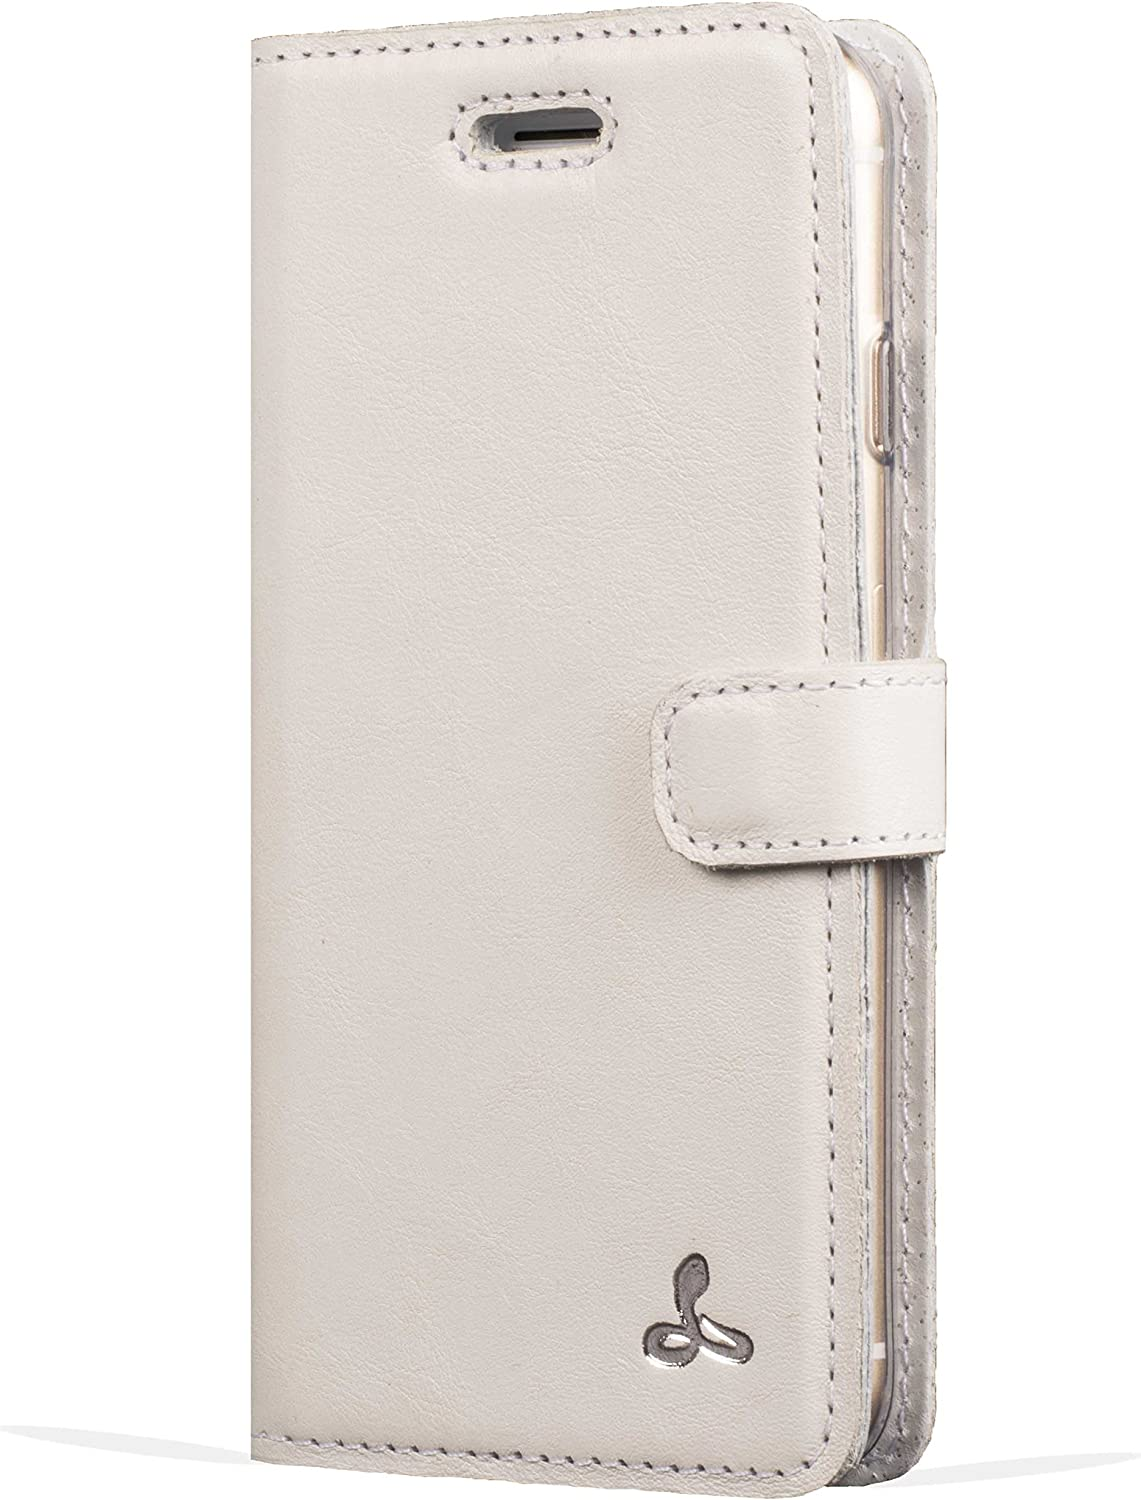 Apple iPhone 5 / 5S / SE Premium Pastel Leather Case with Credit Card/Note Slot for Apple iPhone 5 / 5S / SE (Porcelain) from The Pastel Collection by Snakehive